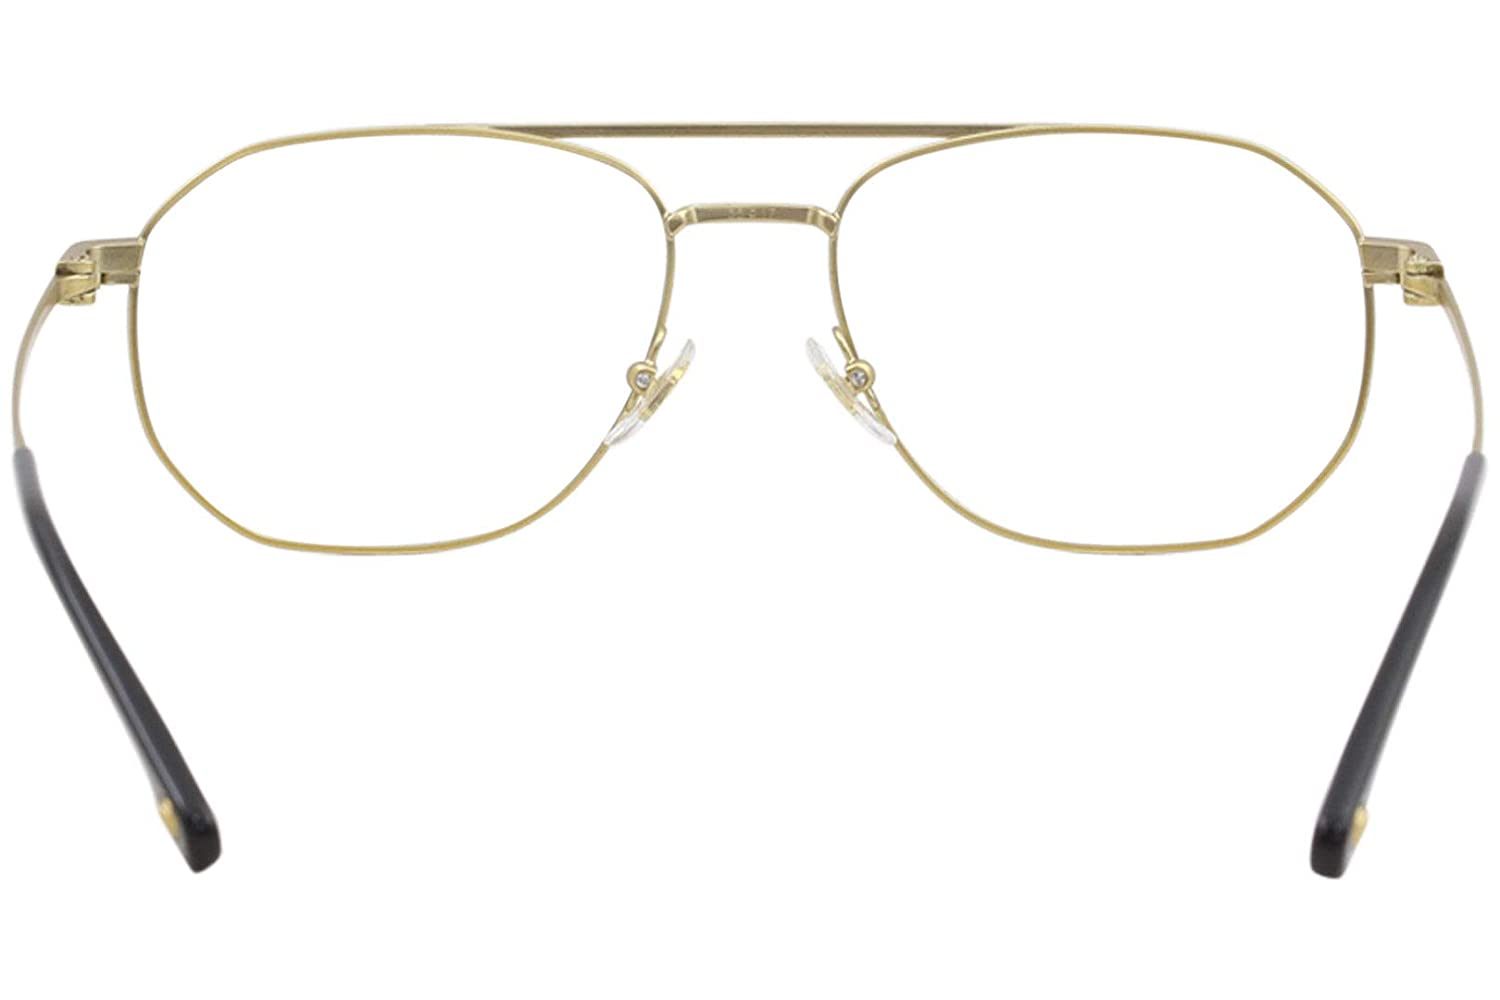 65599cec43aaa Amazon.com  Eyeglasses Versace VE 1252 1428 TRIBUTE GOLD  Clothing